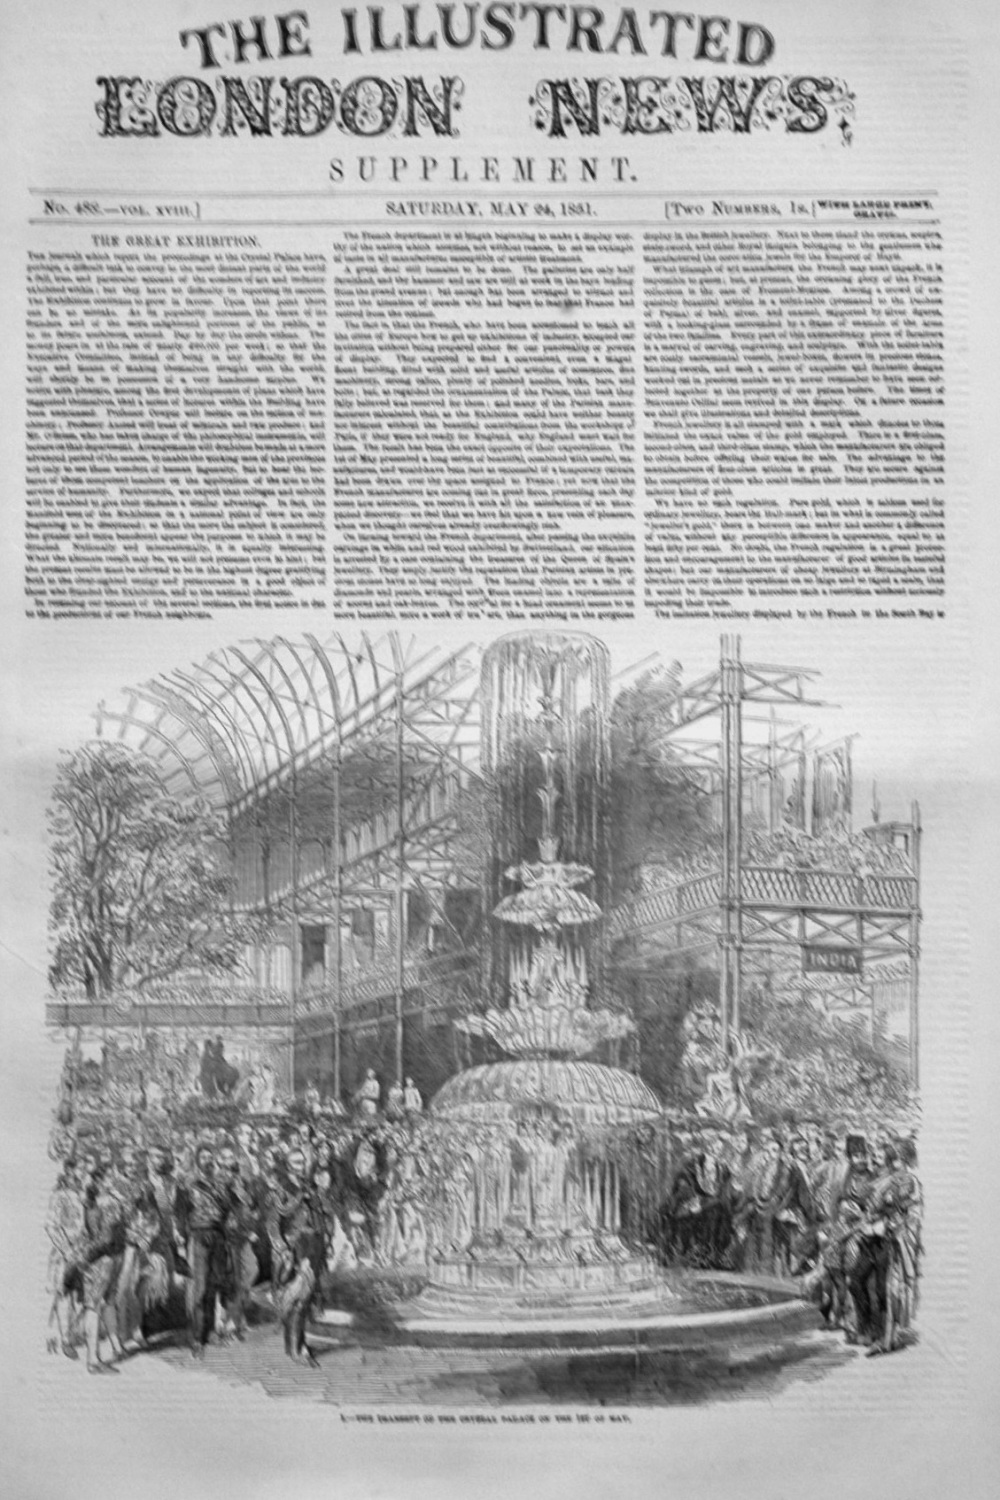 Illustrated London News Supplement for May 24th 1851.